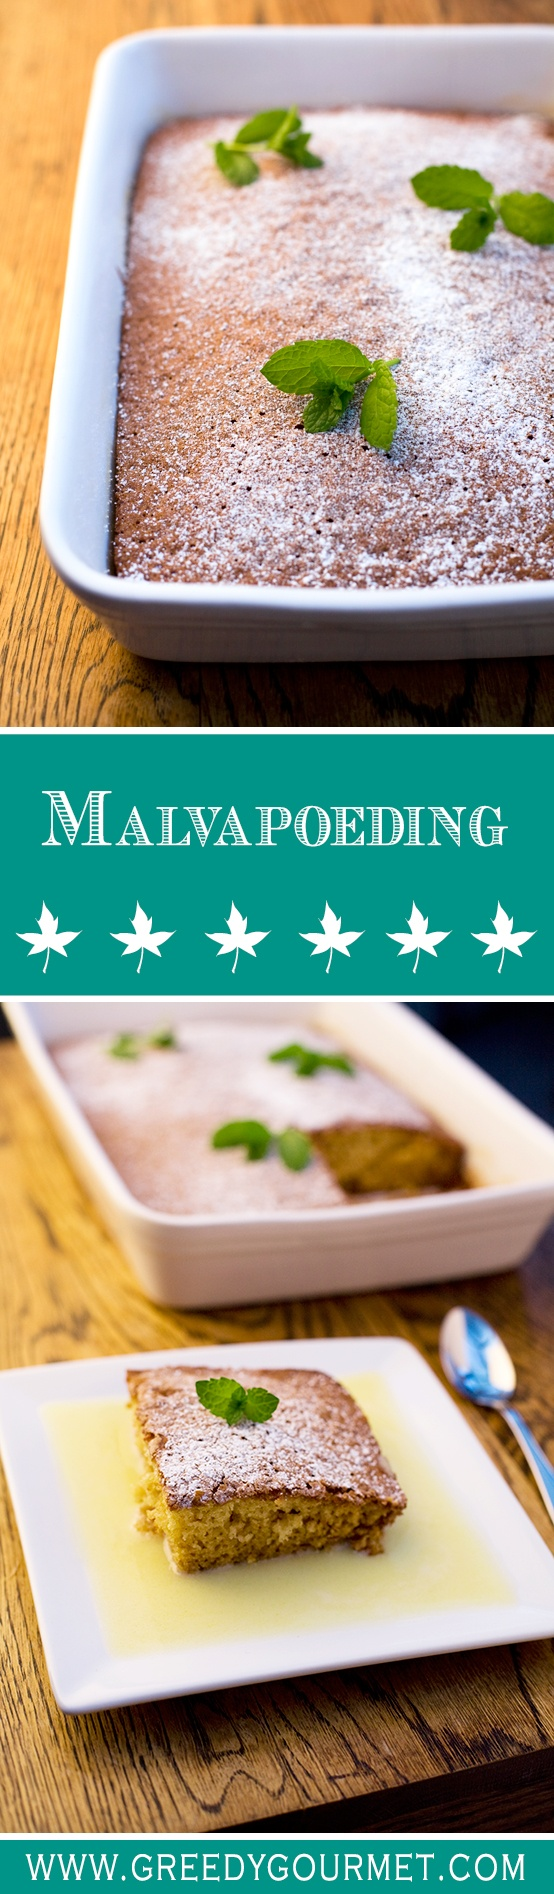 Malvapoeding a.k.a. Marshmallow Pudding is a traditional South African dessert.